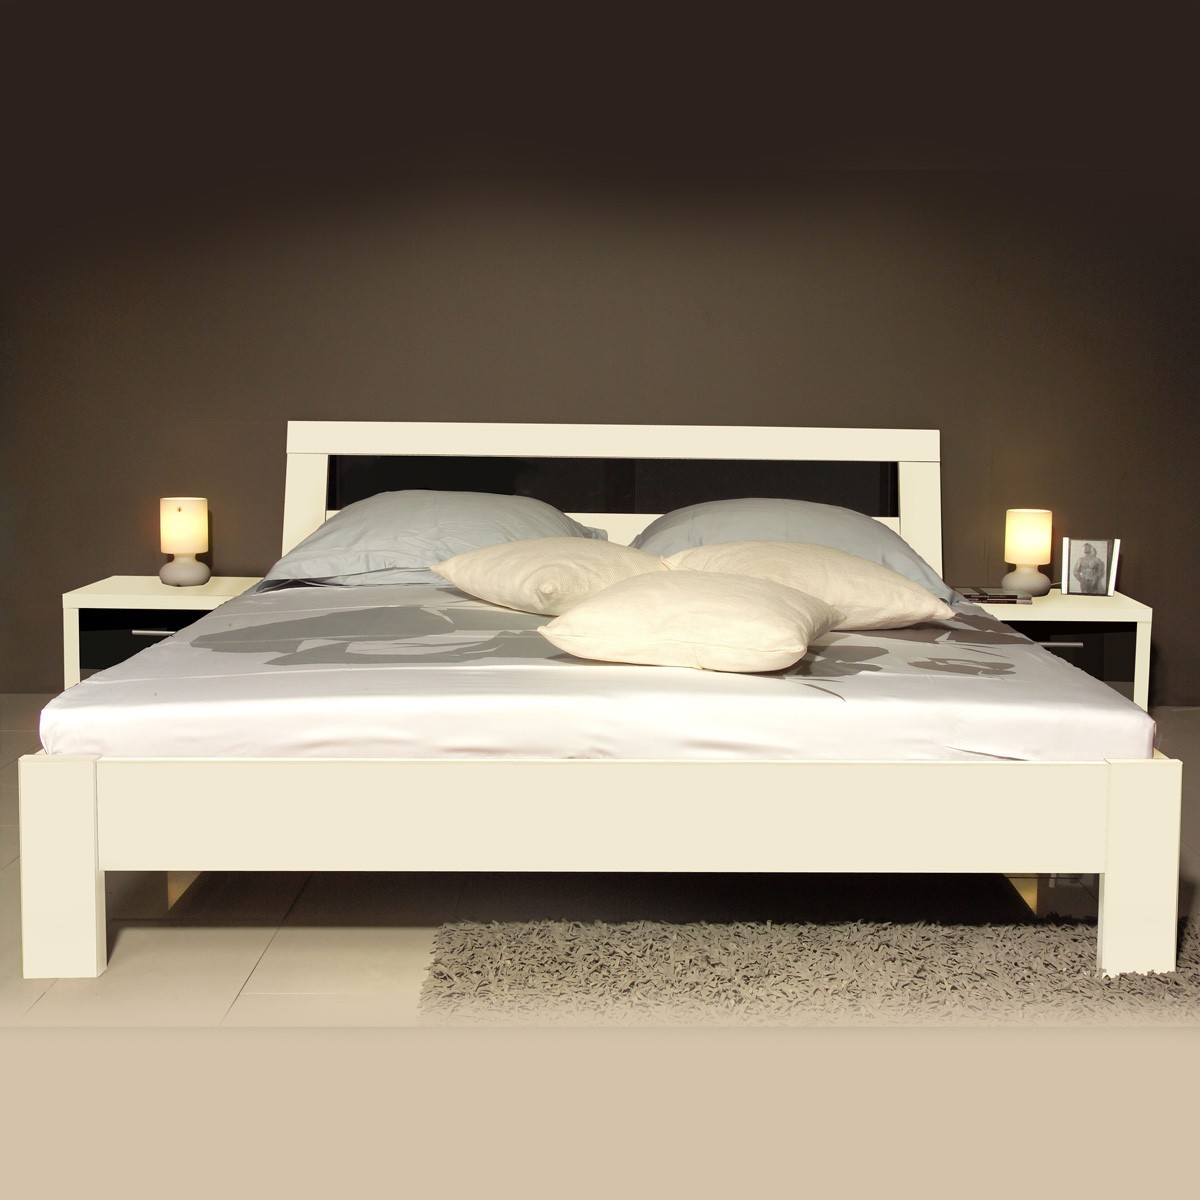 bett mit stauraum 140x200 singlebett bett mit schubladen stauraum kiefer wei 140x200 ebay bett. Black Bedroom Furniture Sets. Home Design Ideas